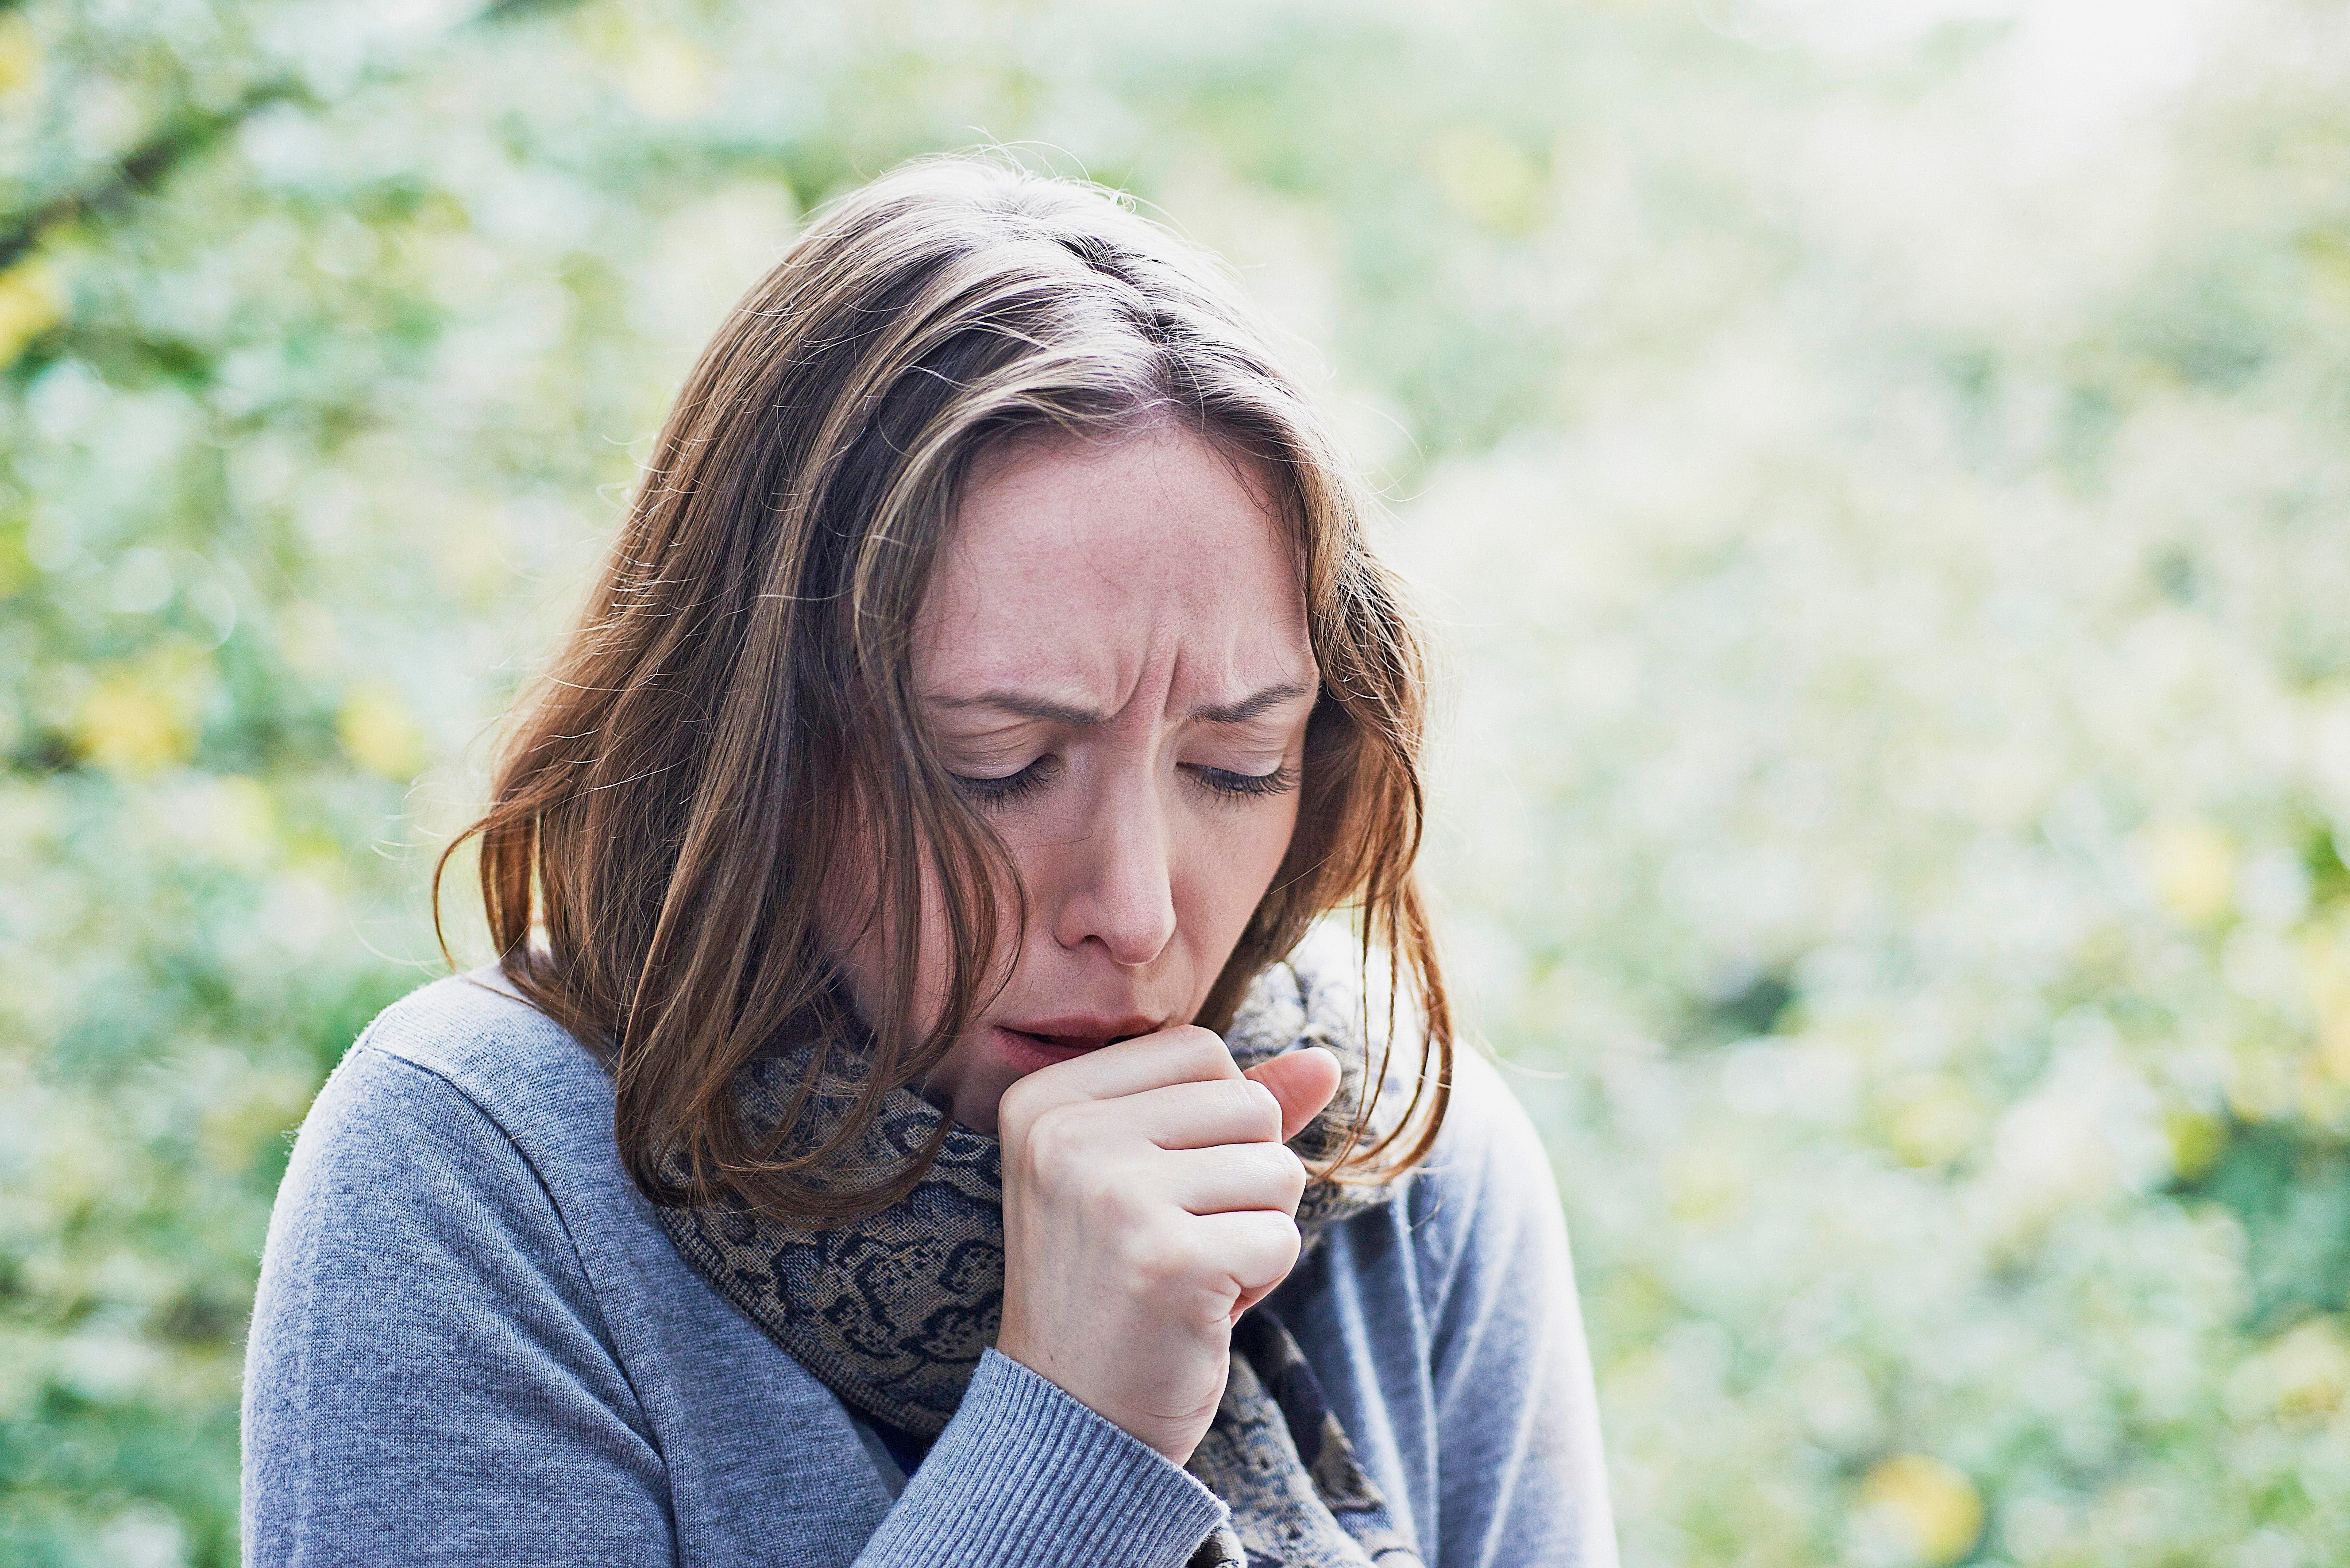 What is flu, what are the symptoms of the influenza, how contagious is the virus, and is a killer flu pandemic going to hit us?